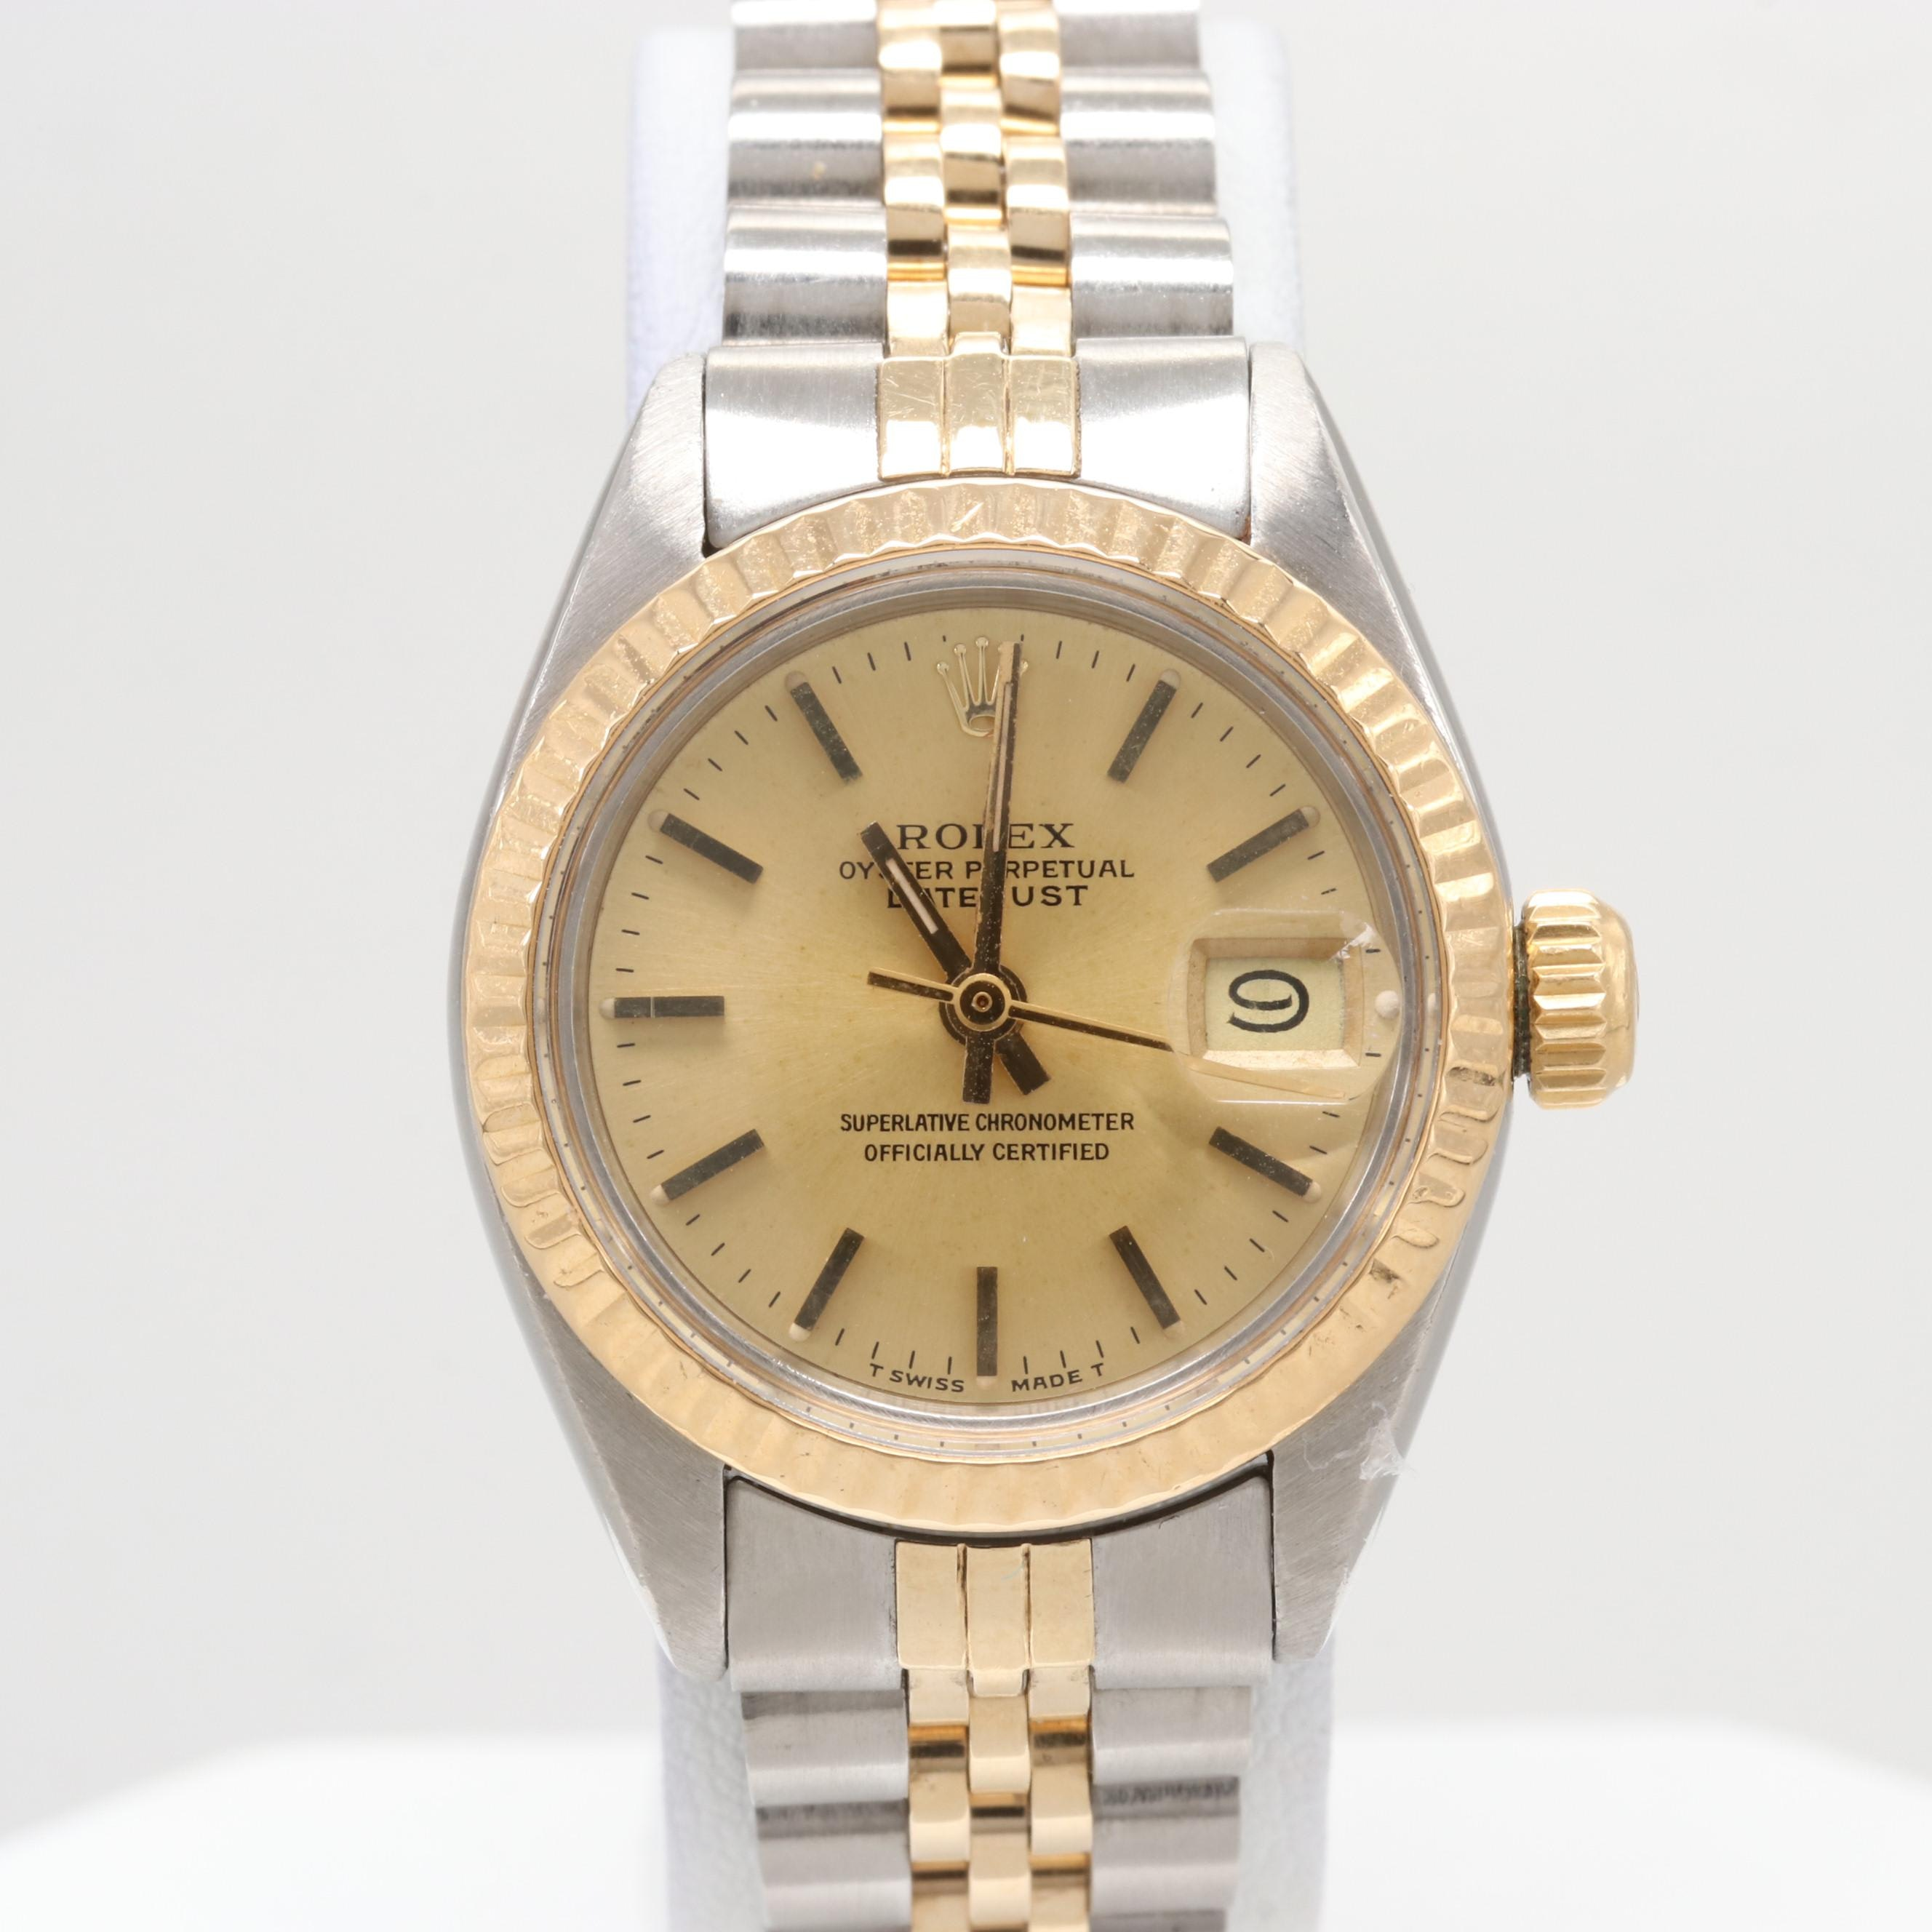 Rolex Datejust Stainless Steel and 18K Yellow Gold Automatic Wristwatch, 1979